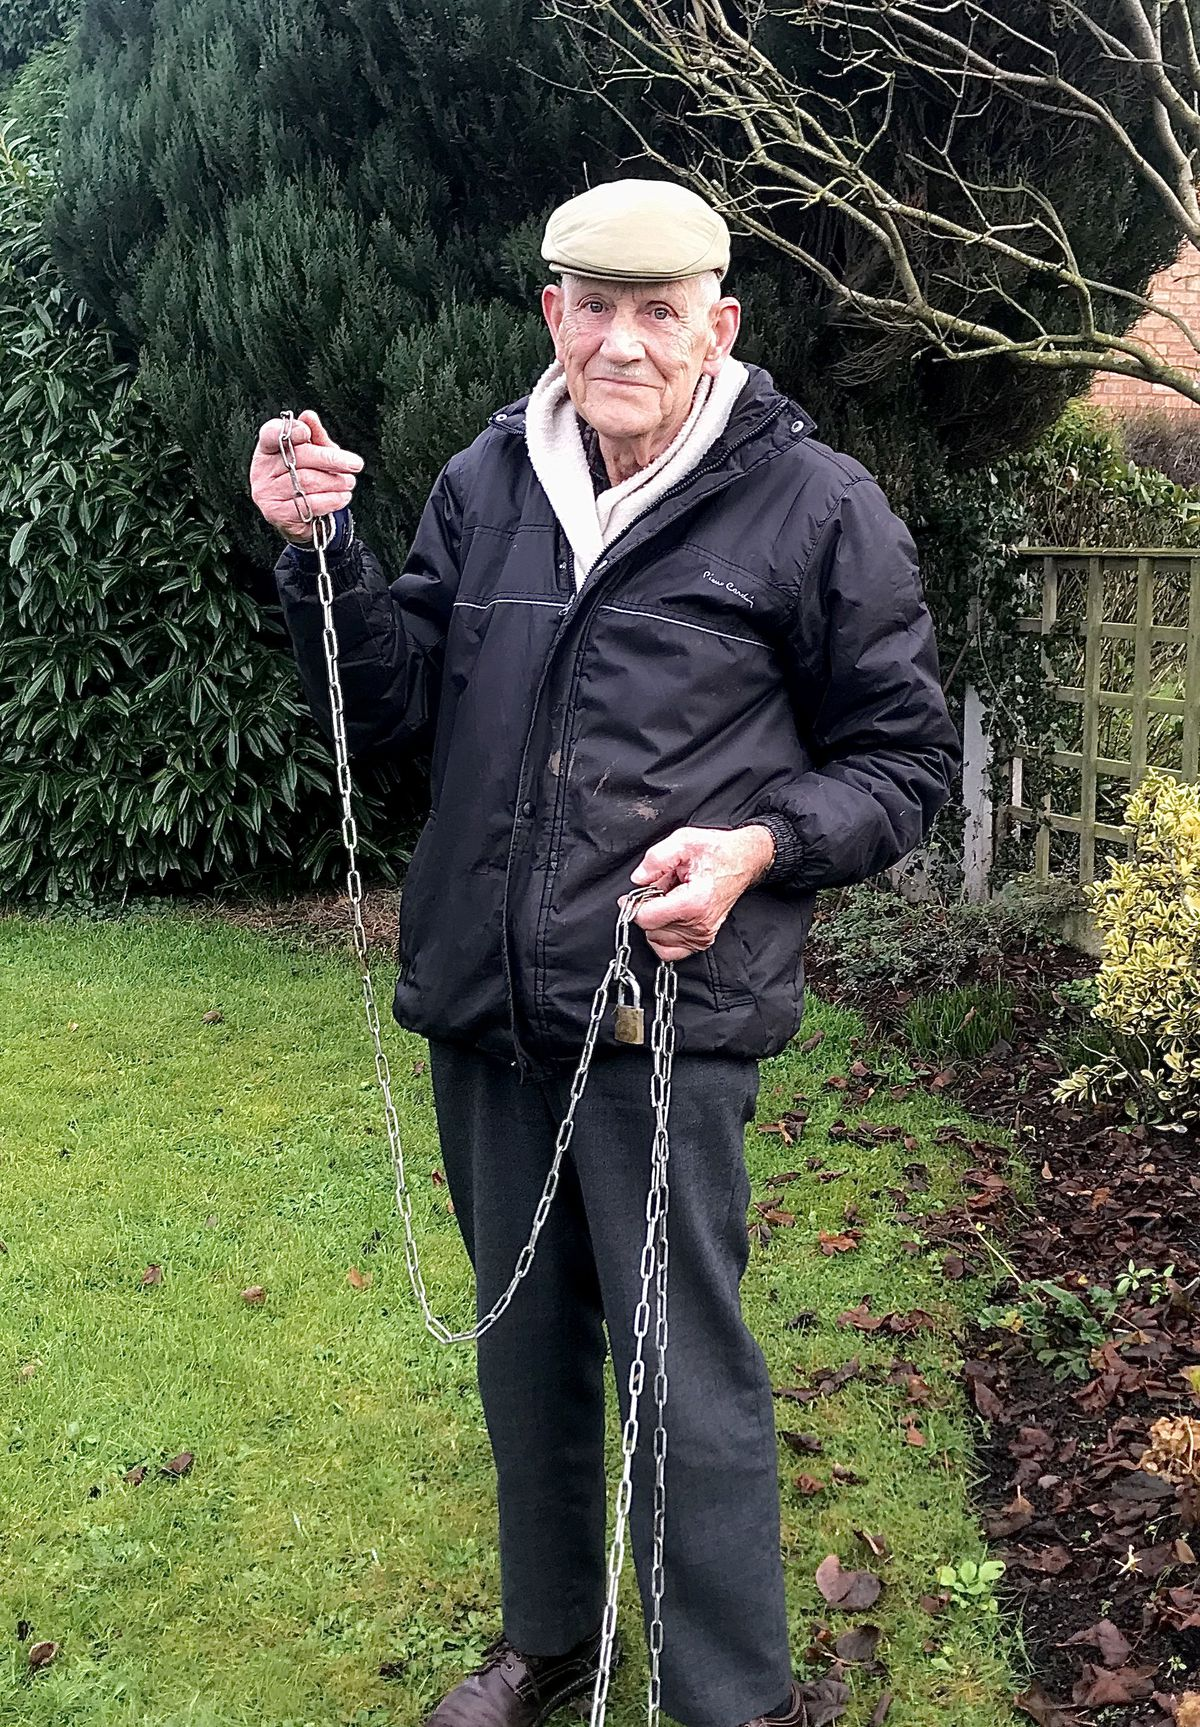 Peter Young, 79, organiser of the Sheriffhales Christmas display with the chains that were broken